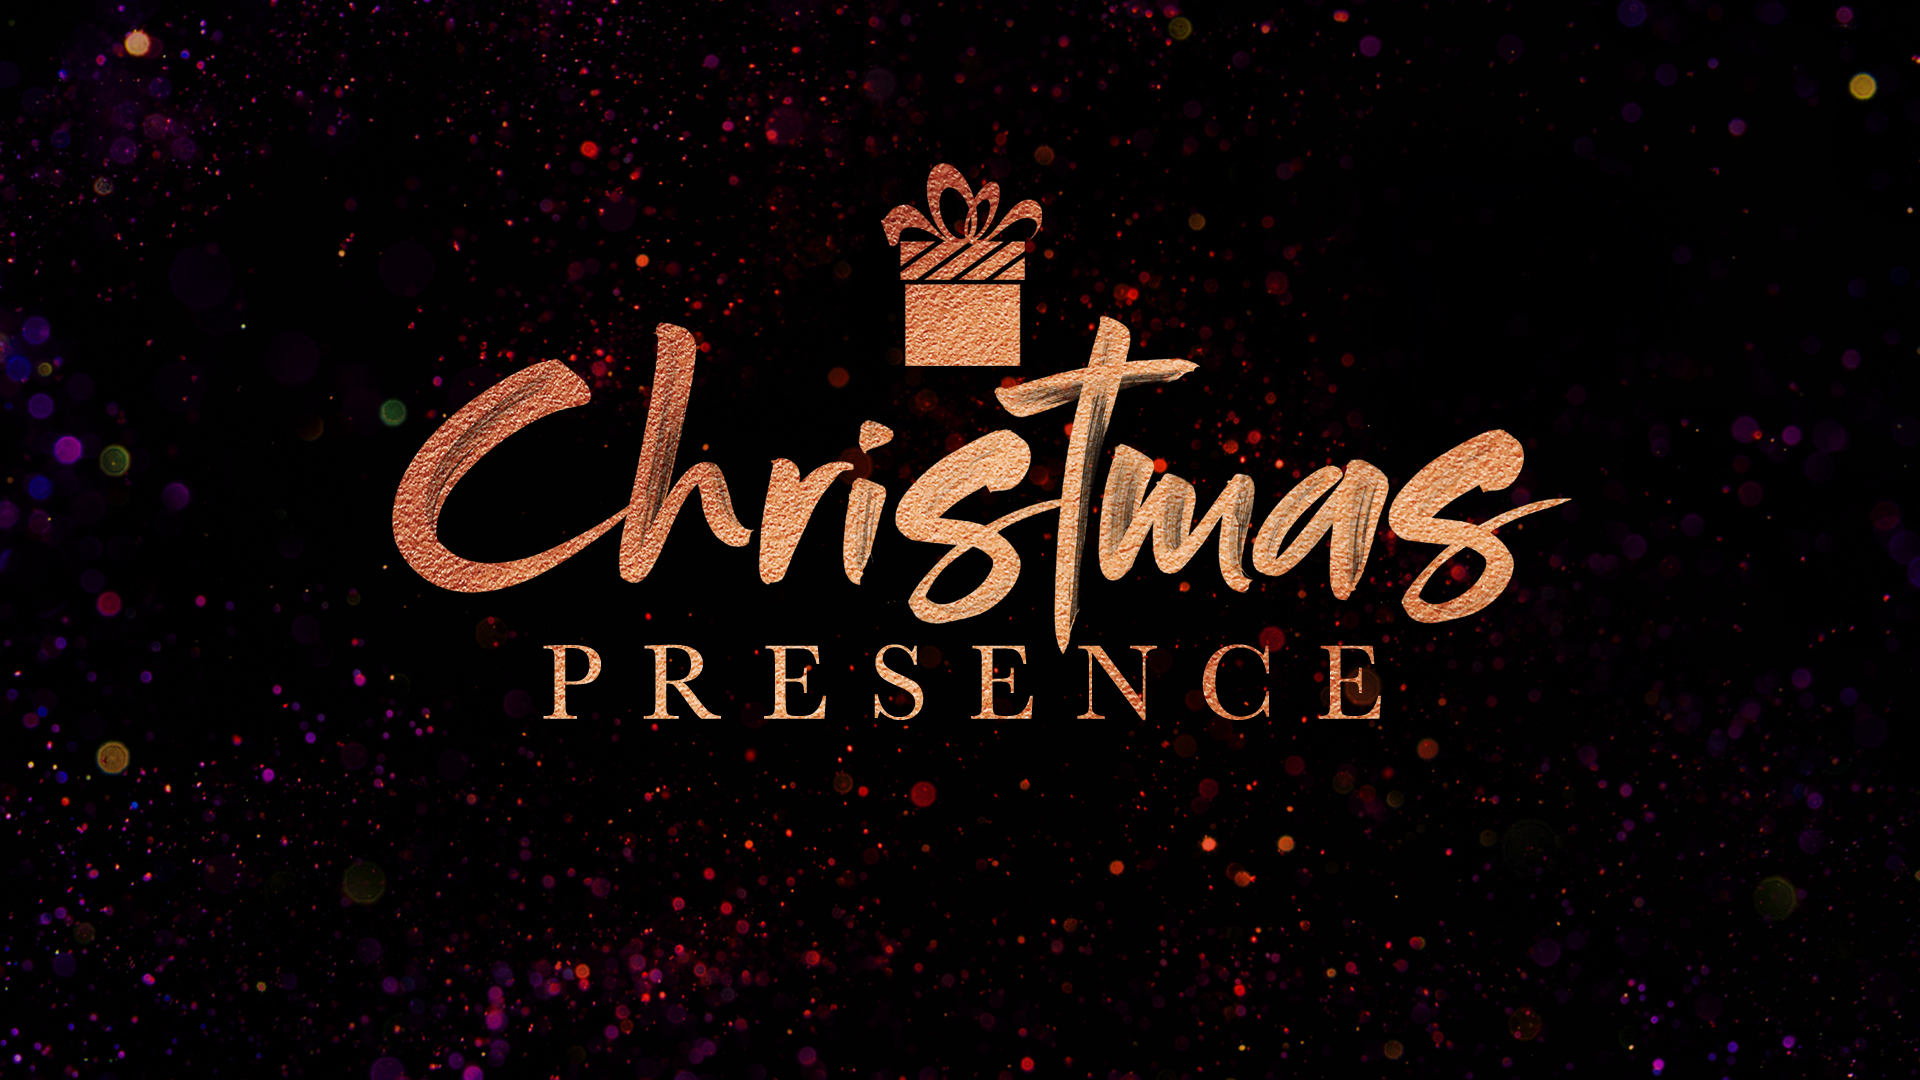 December Series: Christmas Presence    12/23/2018 - The Gift of God's Security    12/16.2018 - The Gift God's Strength    12/09/2018 - The Gift of God's Guidance